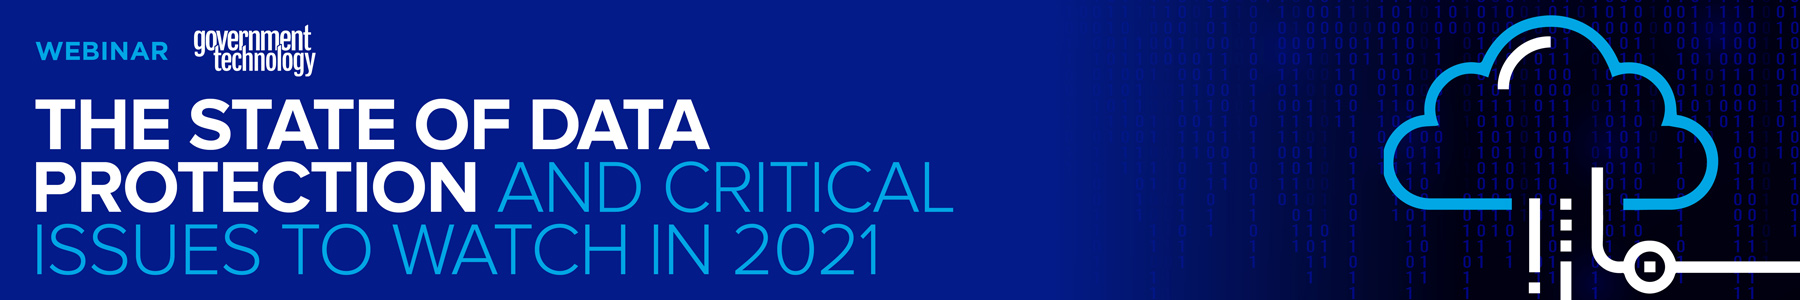 The State of Data Protection and Critical Issues to Watch in 2021